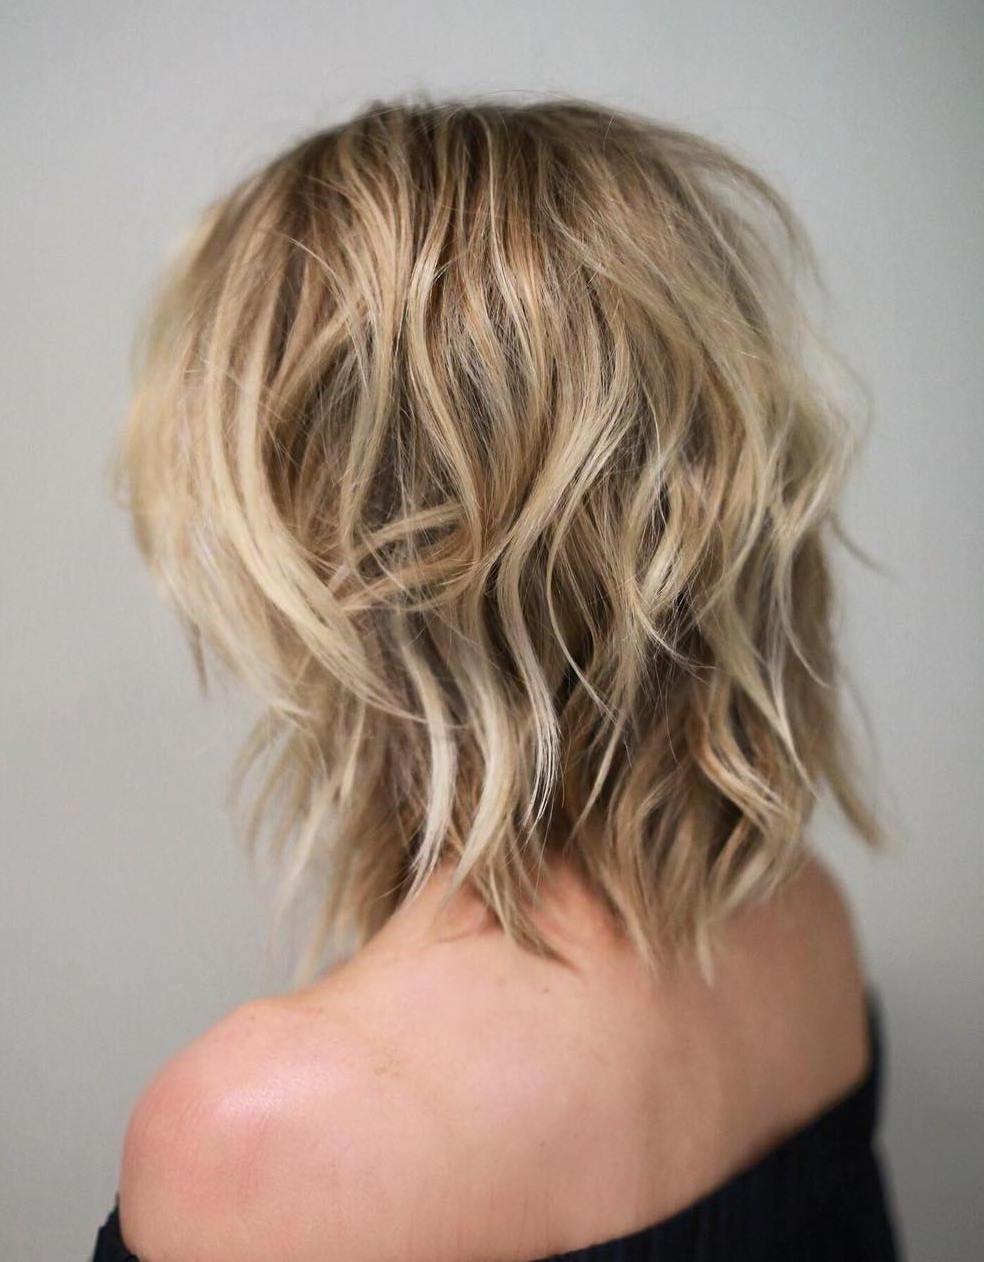 Shag Haircuts And Hairstyles In 2019 — Therighthairstyles Pertaining To Preferred Two Tone Disheveled Layered Hairstyles (View 18 of 20)